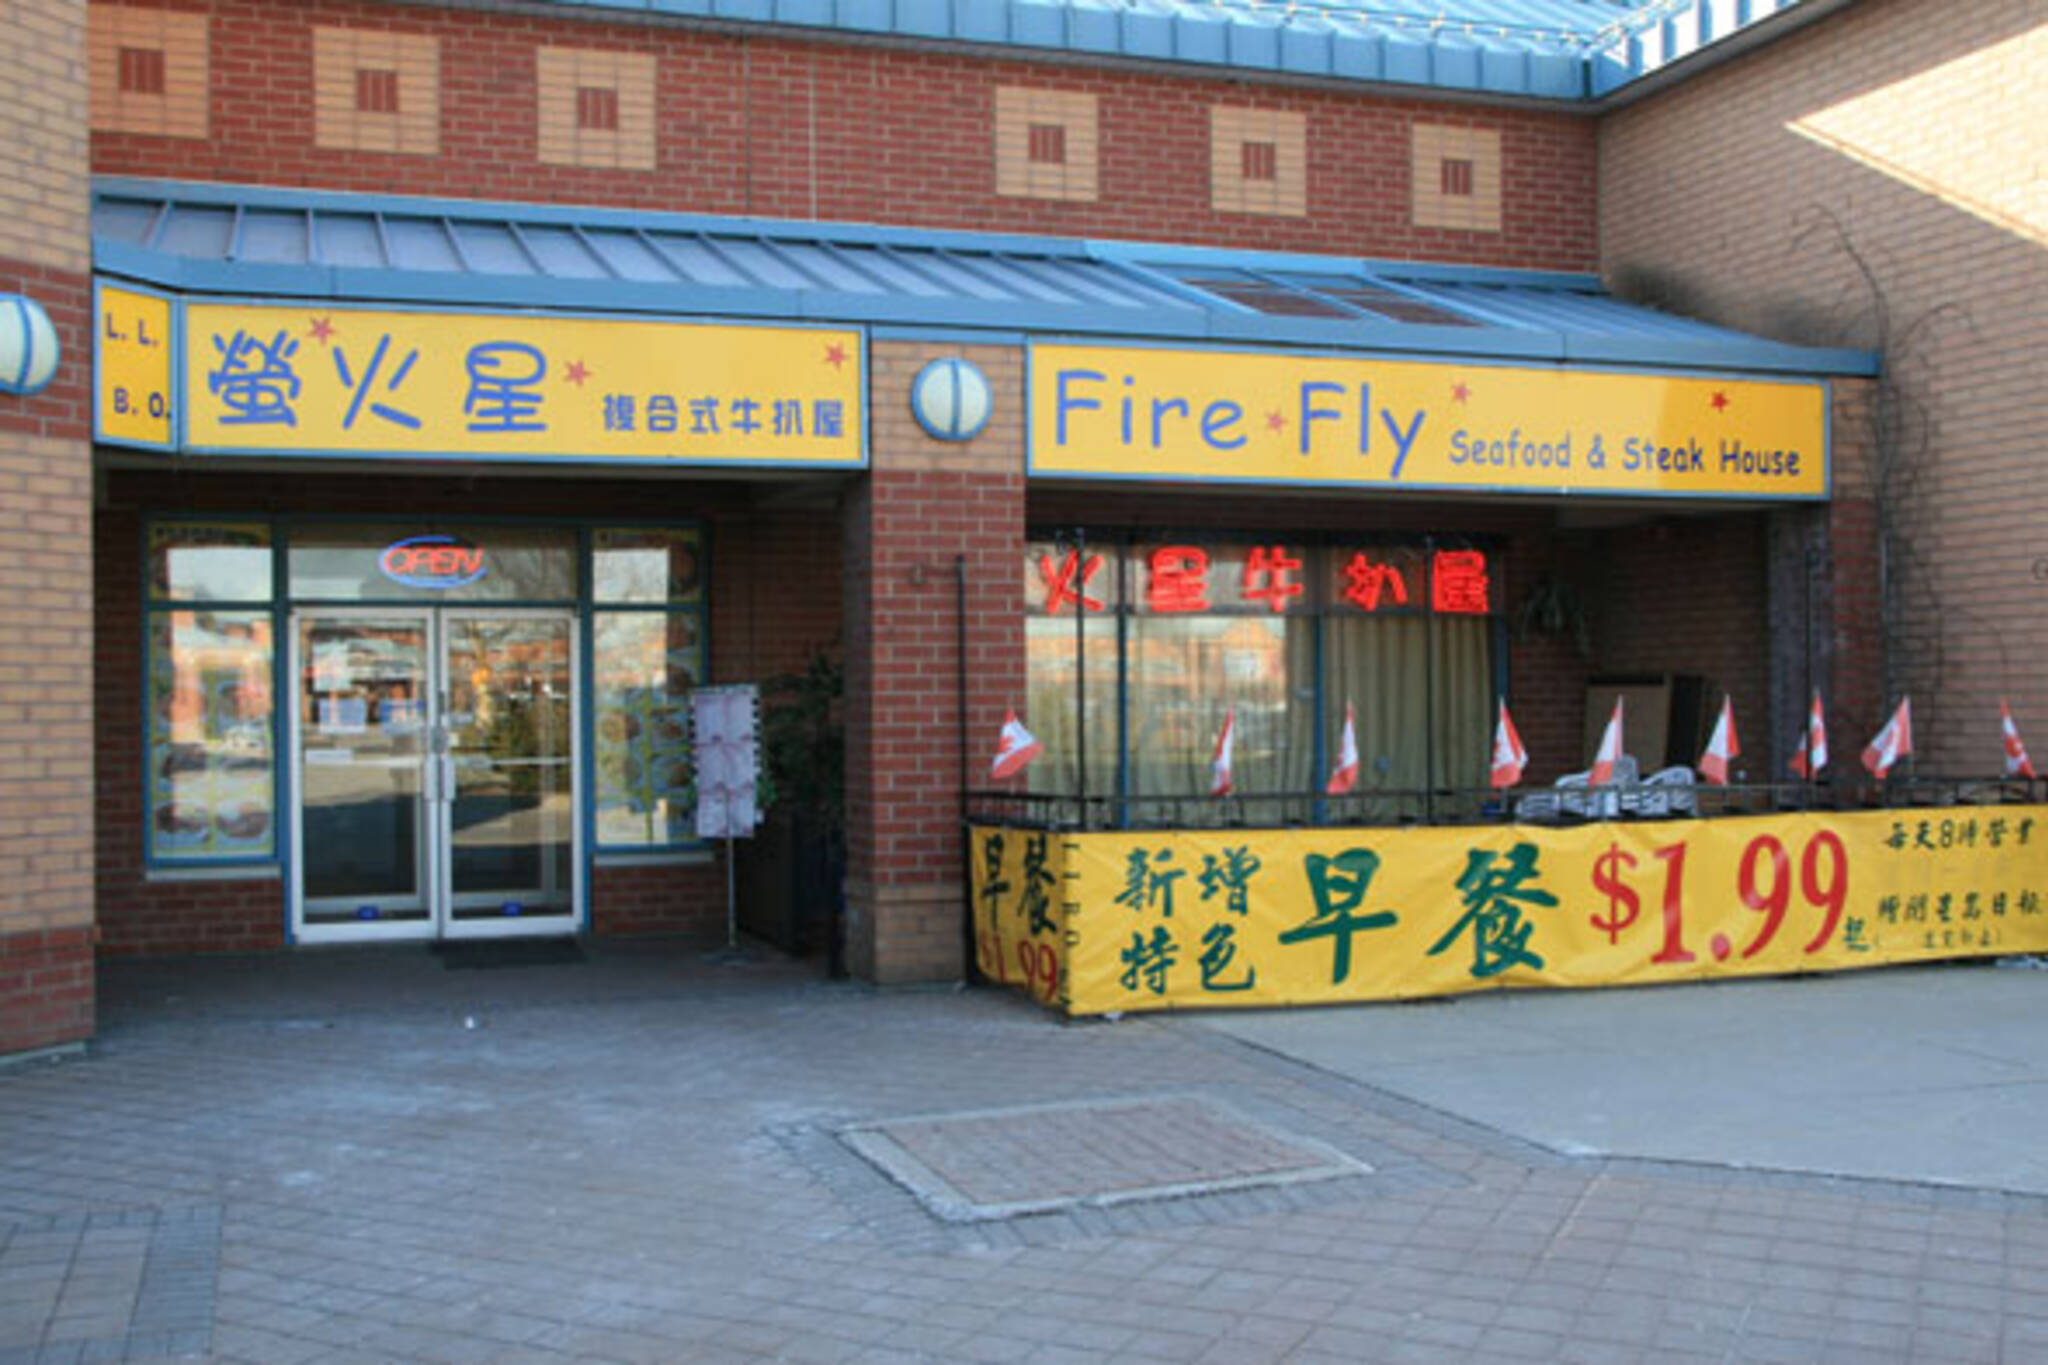 Fire Fly seafood and steak house